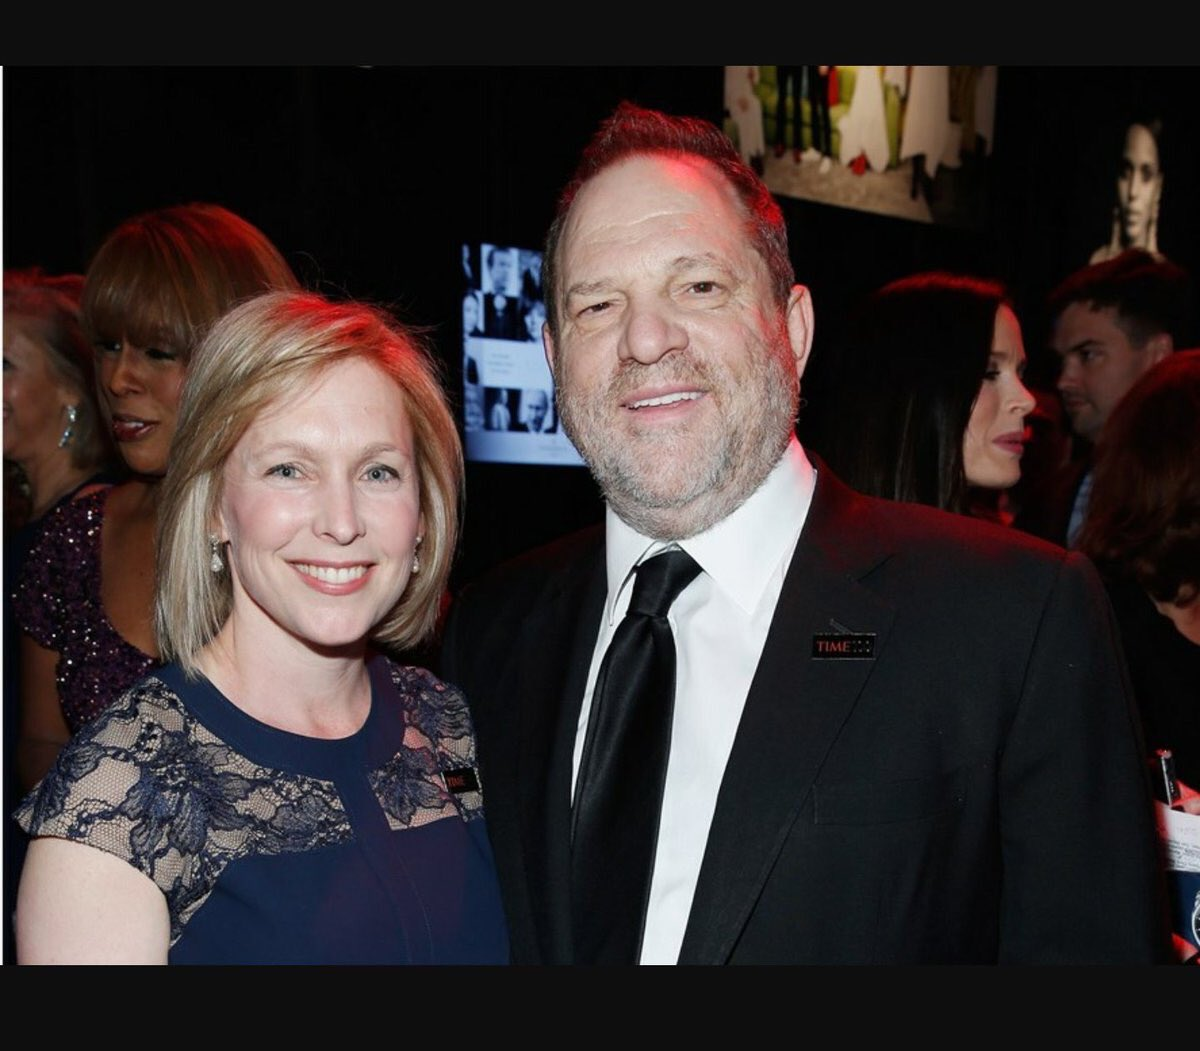 Hey @SenGillibrand how did things work out with Harvey?